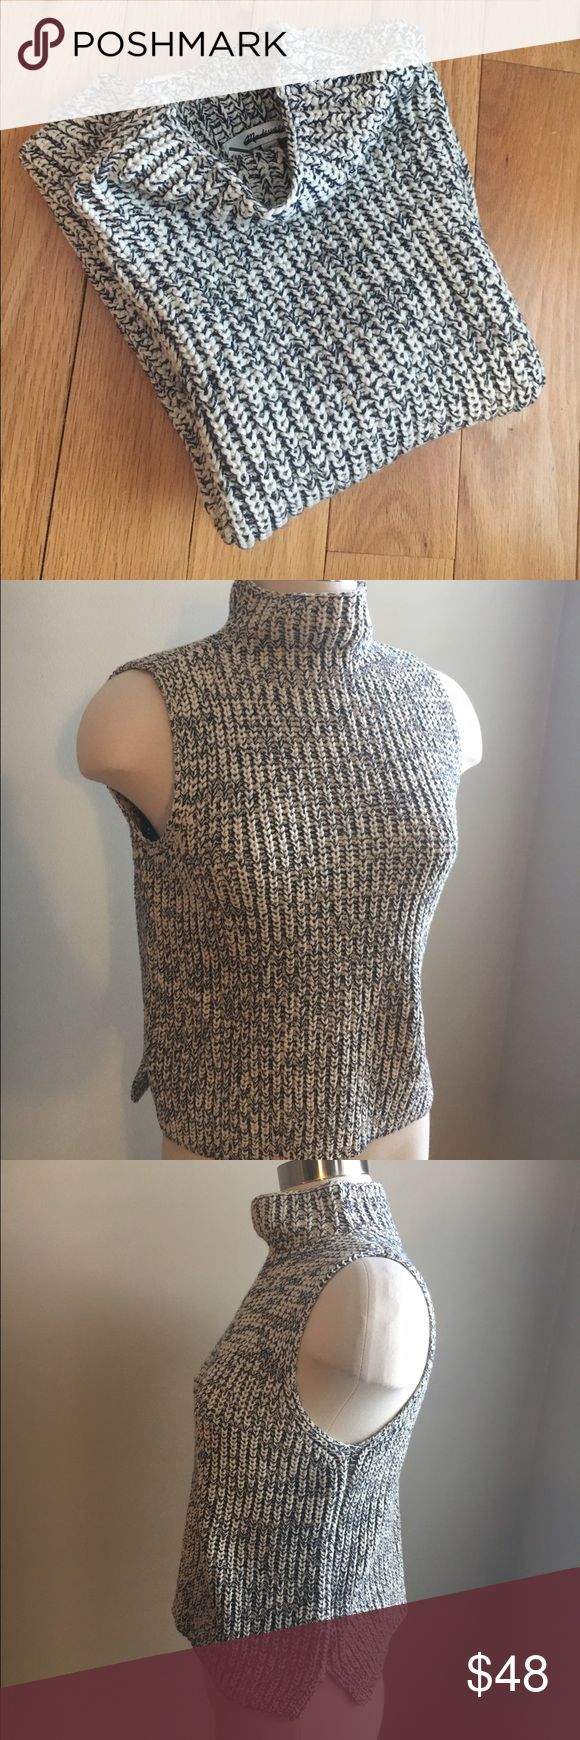 NEW MADEWELL Veranda Sleeveless Sweater NEW MADEWELL Veranda Sleeveless Sweater. Super cute. Ersatile tutleneck sweater. Multi seasonal and can be worn alone or layered up.  ❌no trading or holding✅ACCEPTING REASONABLE OFFERS✅ Madewell Sweaters